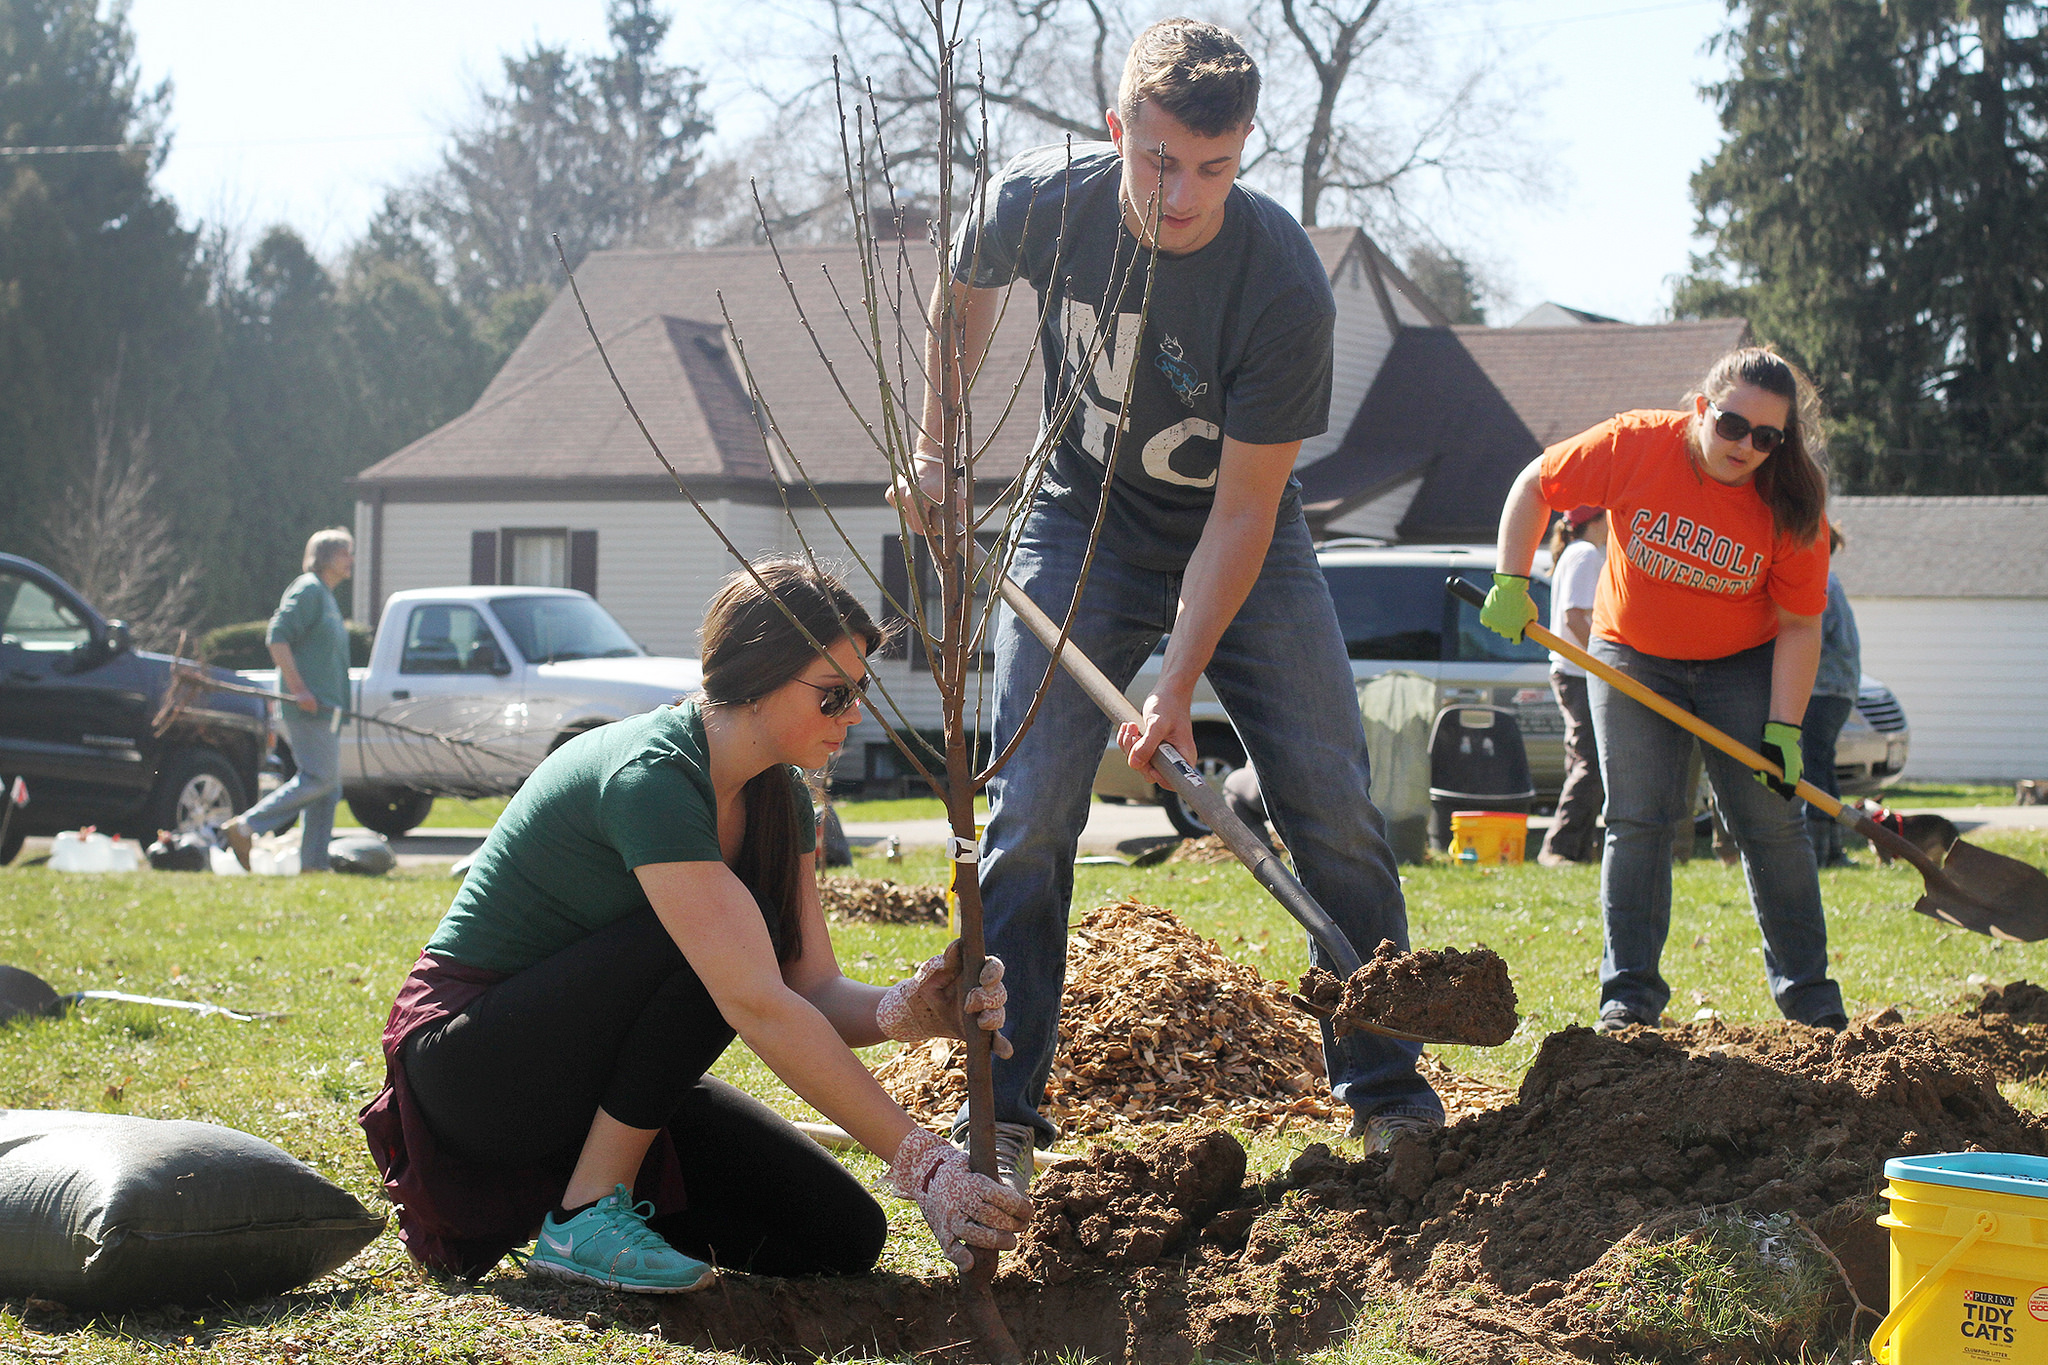 Volunteers plant a pear tree in a vacant lot in Hales Corners as part of the Fruity Nutty Five Contest in April, 2016. (Photo by Hannah Kiger, Victory Garden Initiative)